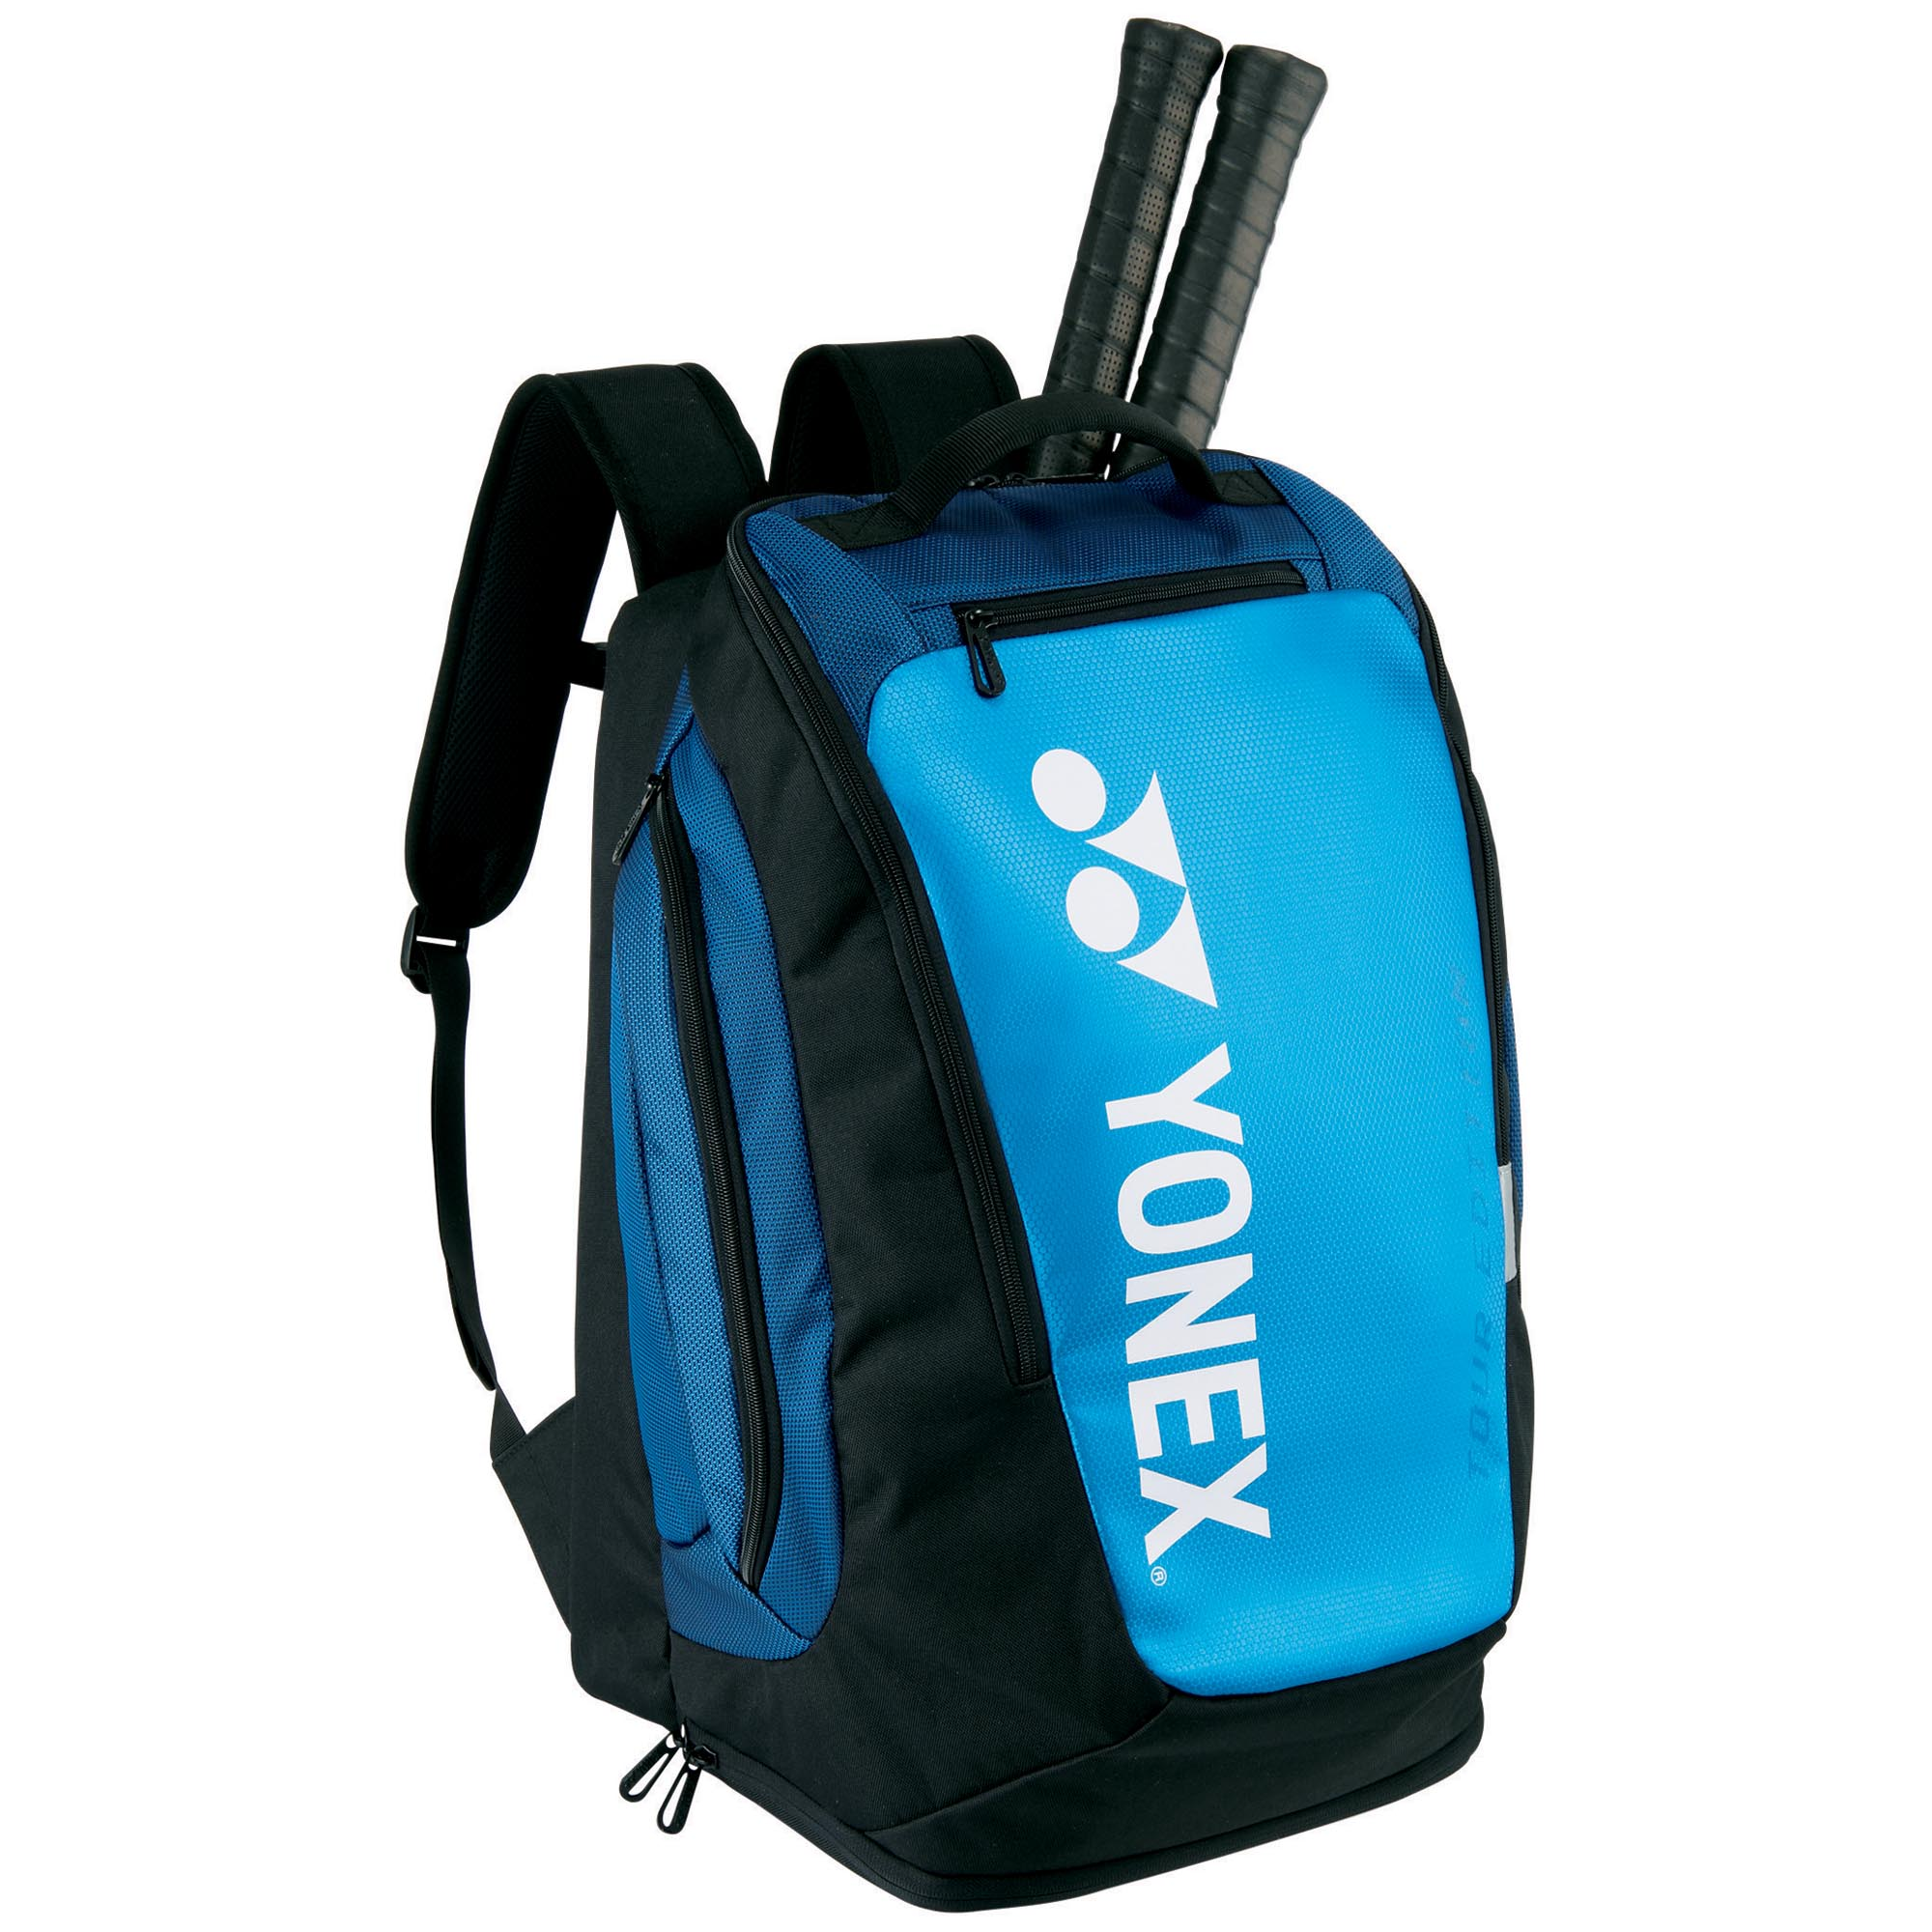 Yonex 92012 Pro Backpack - Deep Blue